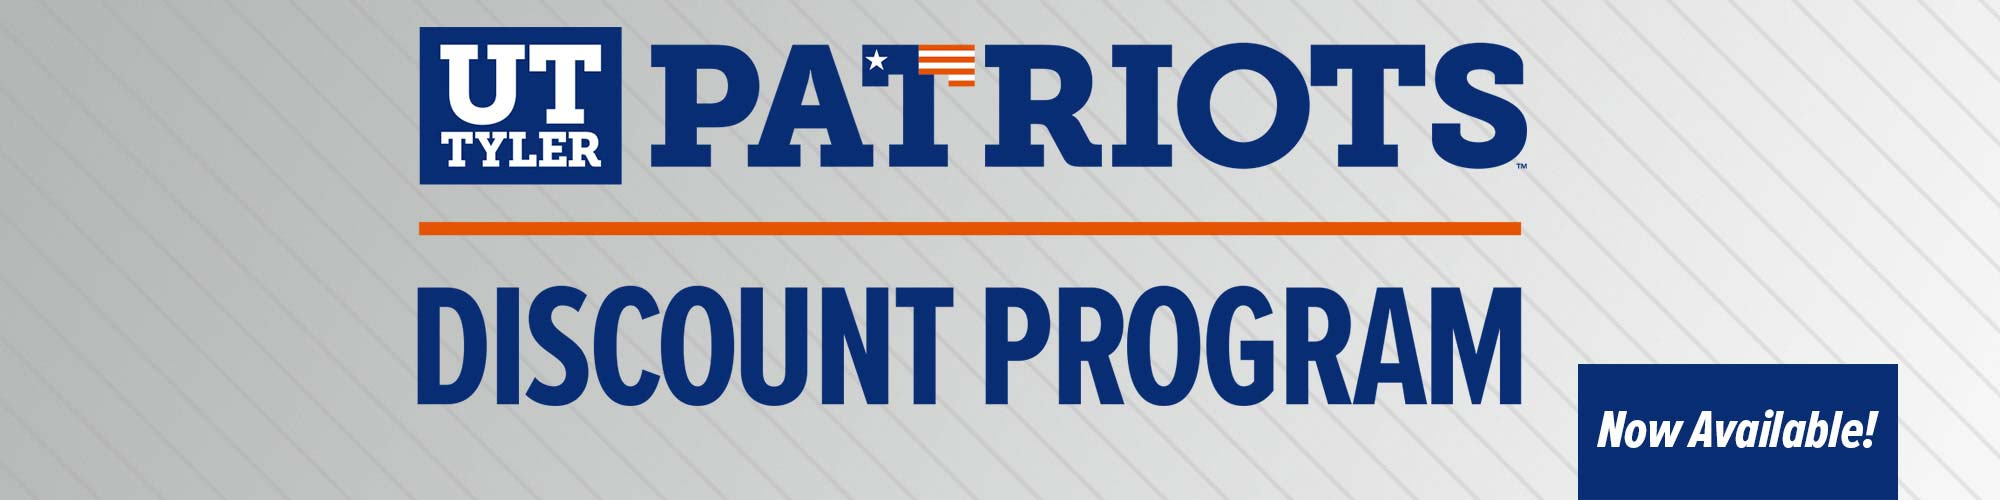 Patriots Discount Program - Now Available!